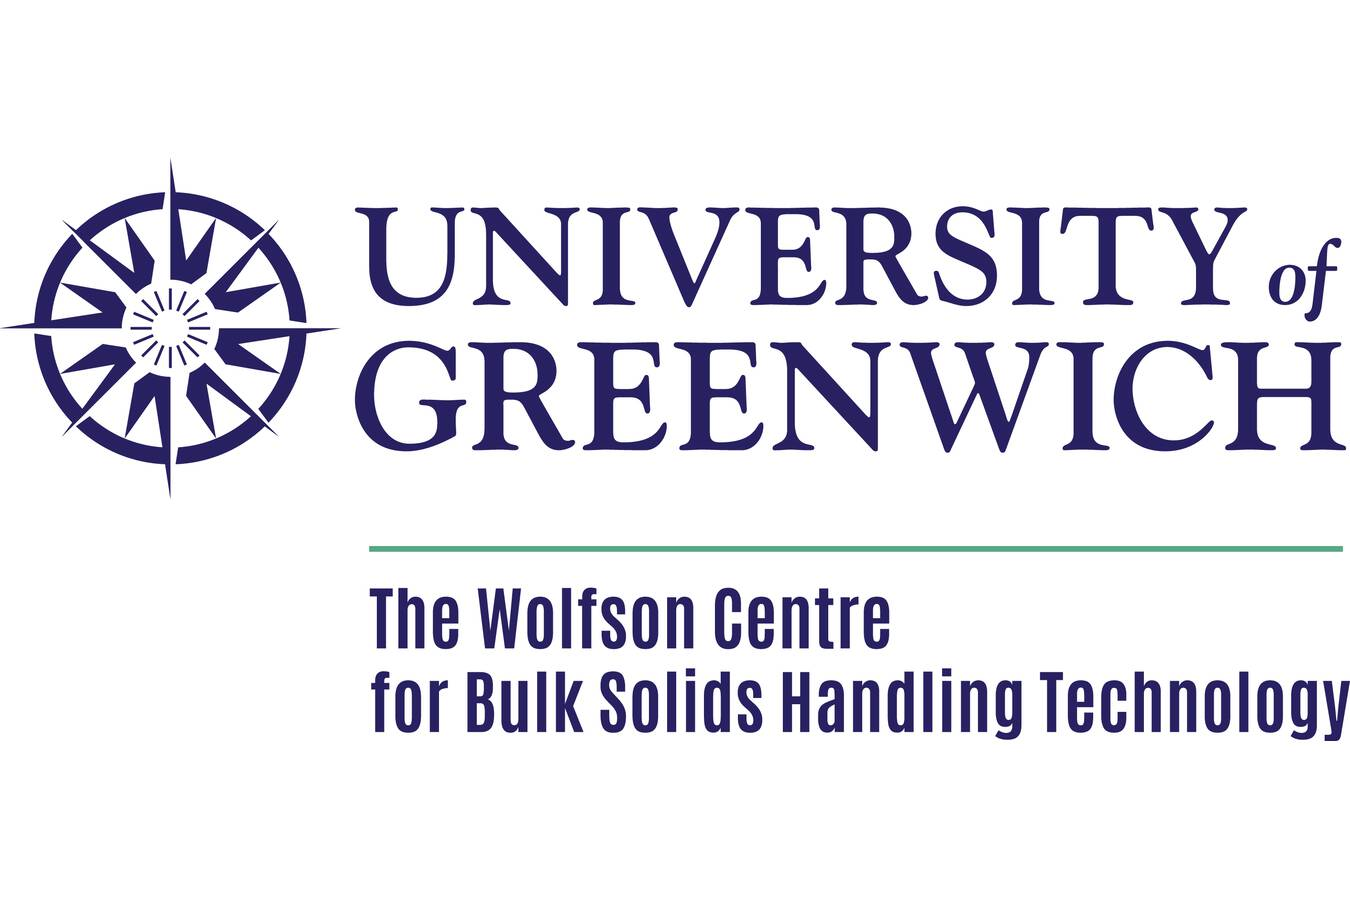 Consultant Engineer vacancy at The Wolfson Centre  (Kent, UK) The Wolfson Centre for Bulk Solids Handling Technology requires an Engineers to support Enterprise, Research, Teaching and Development work in the specialist field of bulk solids handling.